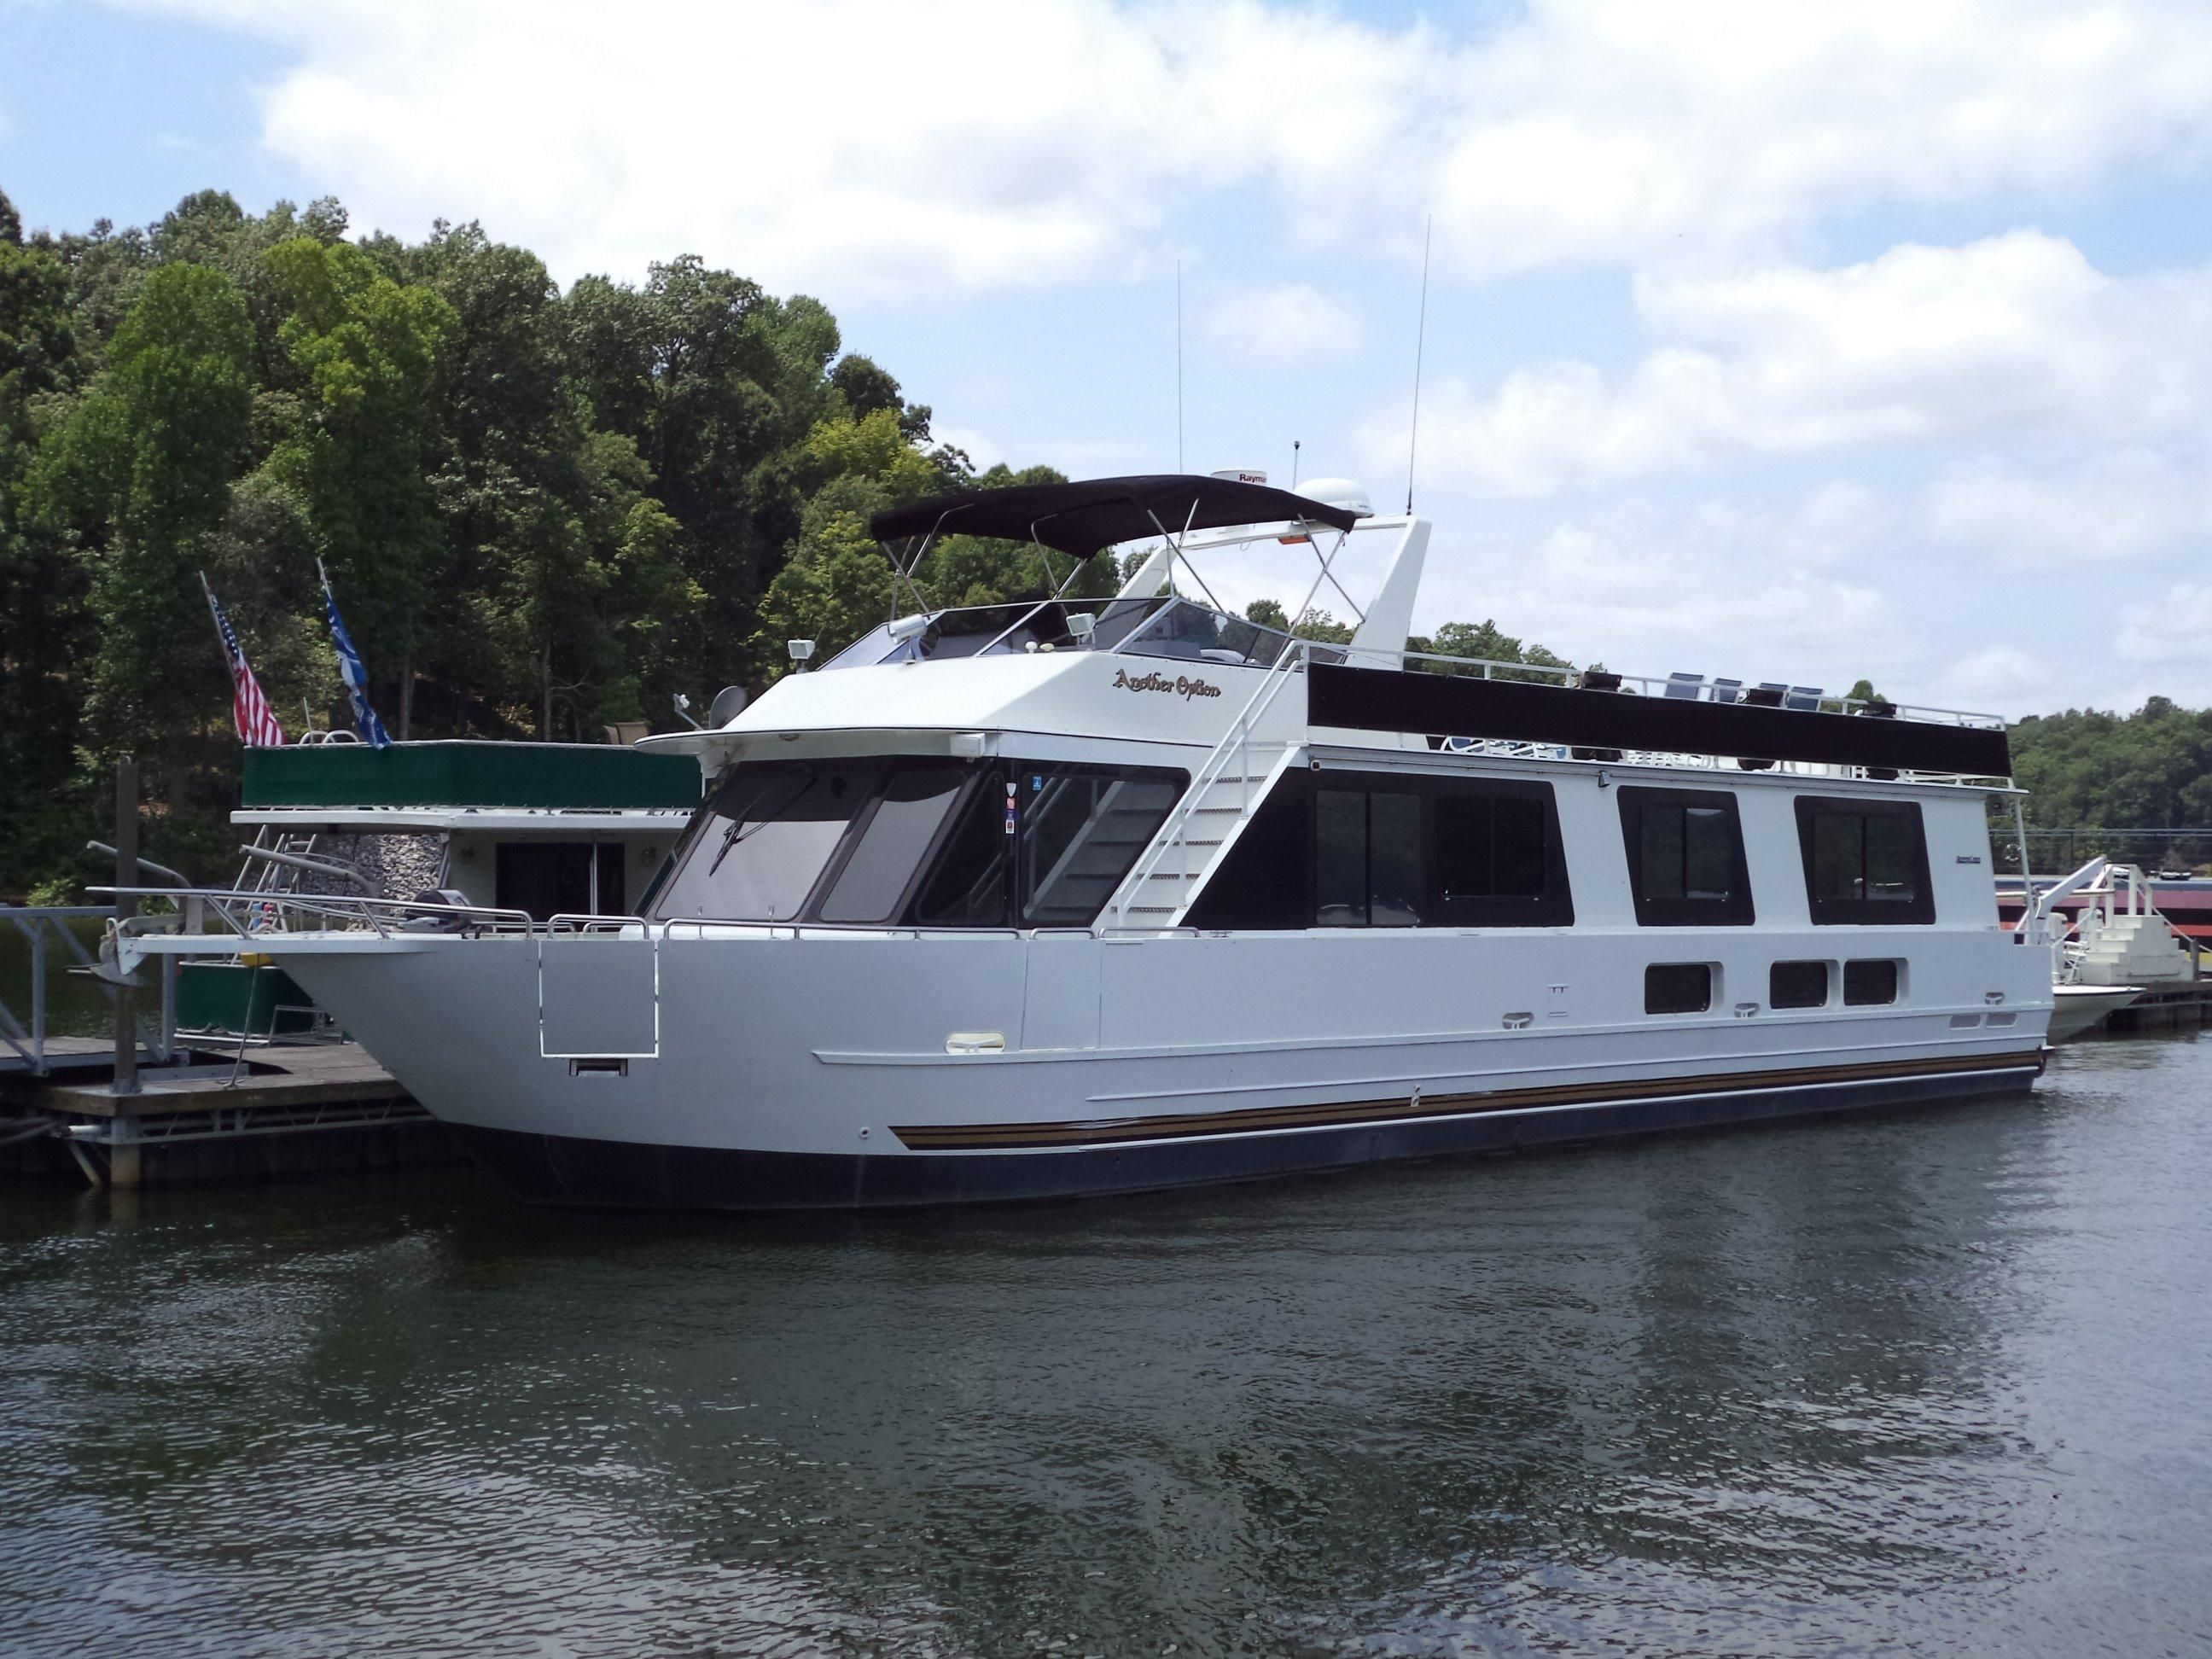 Eddyville (KY) United States  City pictures : 2000 Skipperliner 660 MY Power Boat For Sale www.yachtworld.com